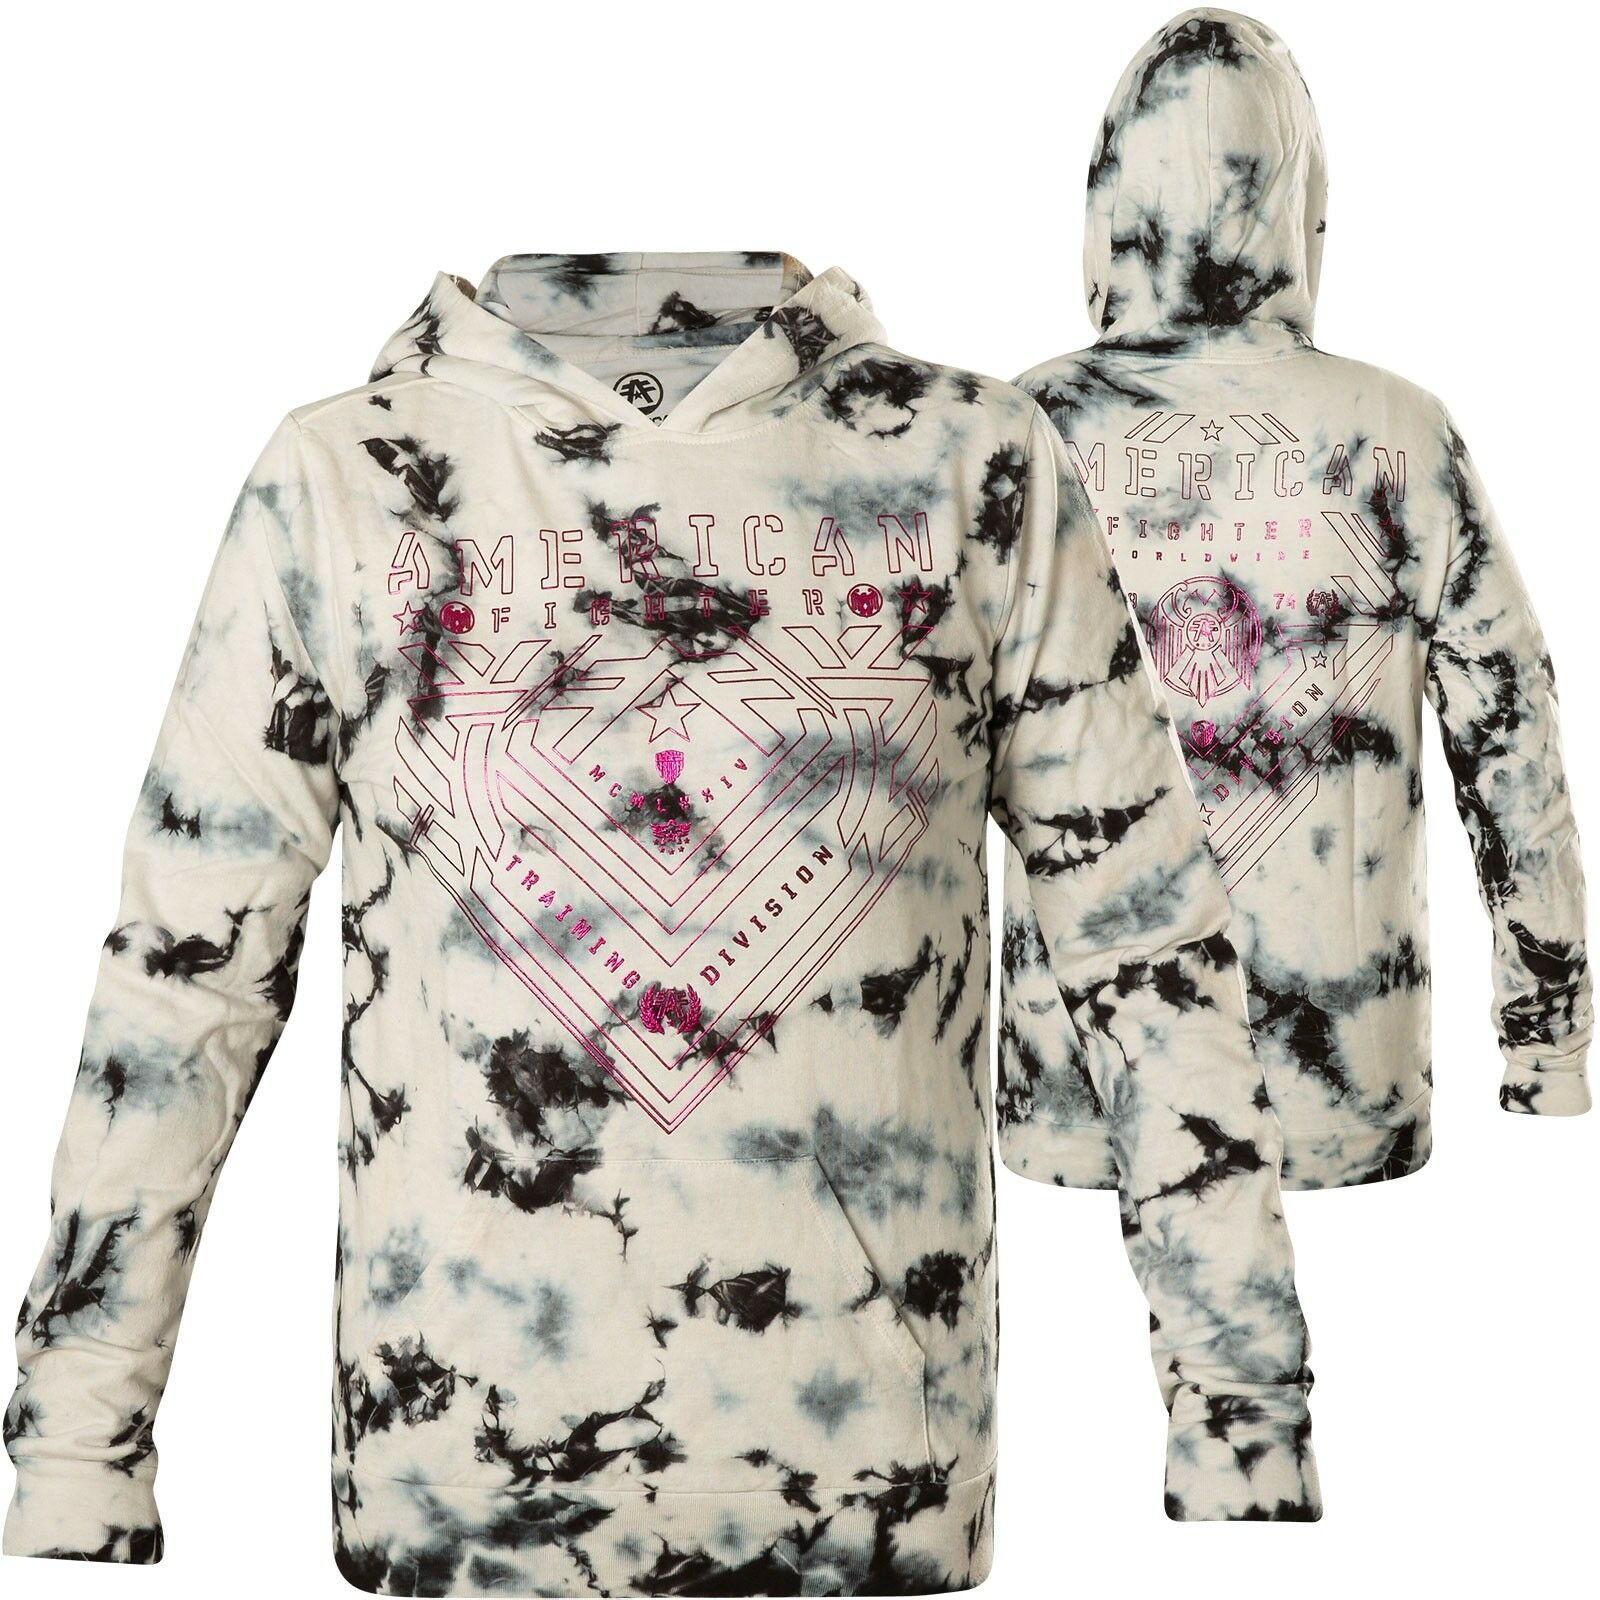 American Fighter by Affliction Woman Hoody ParksideWhite/Grey